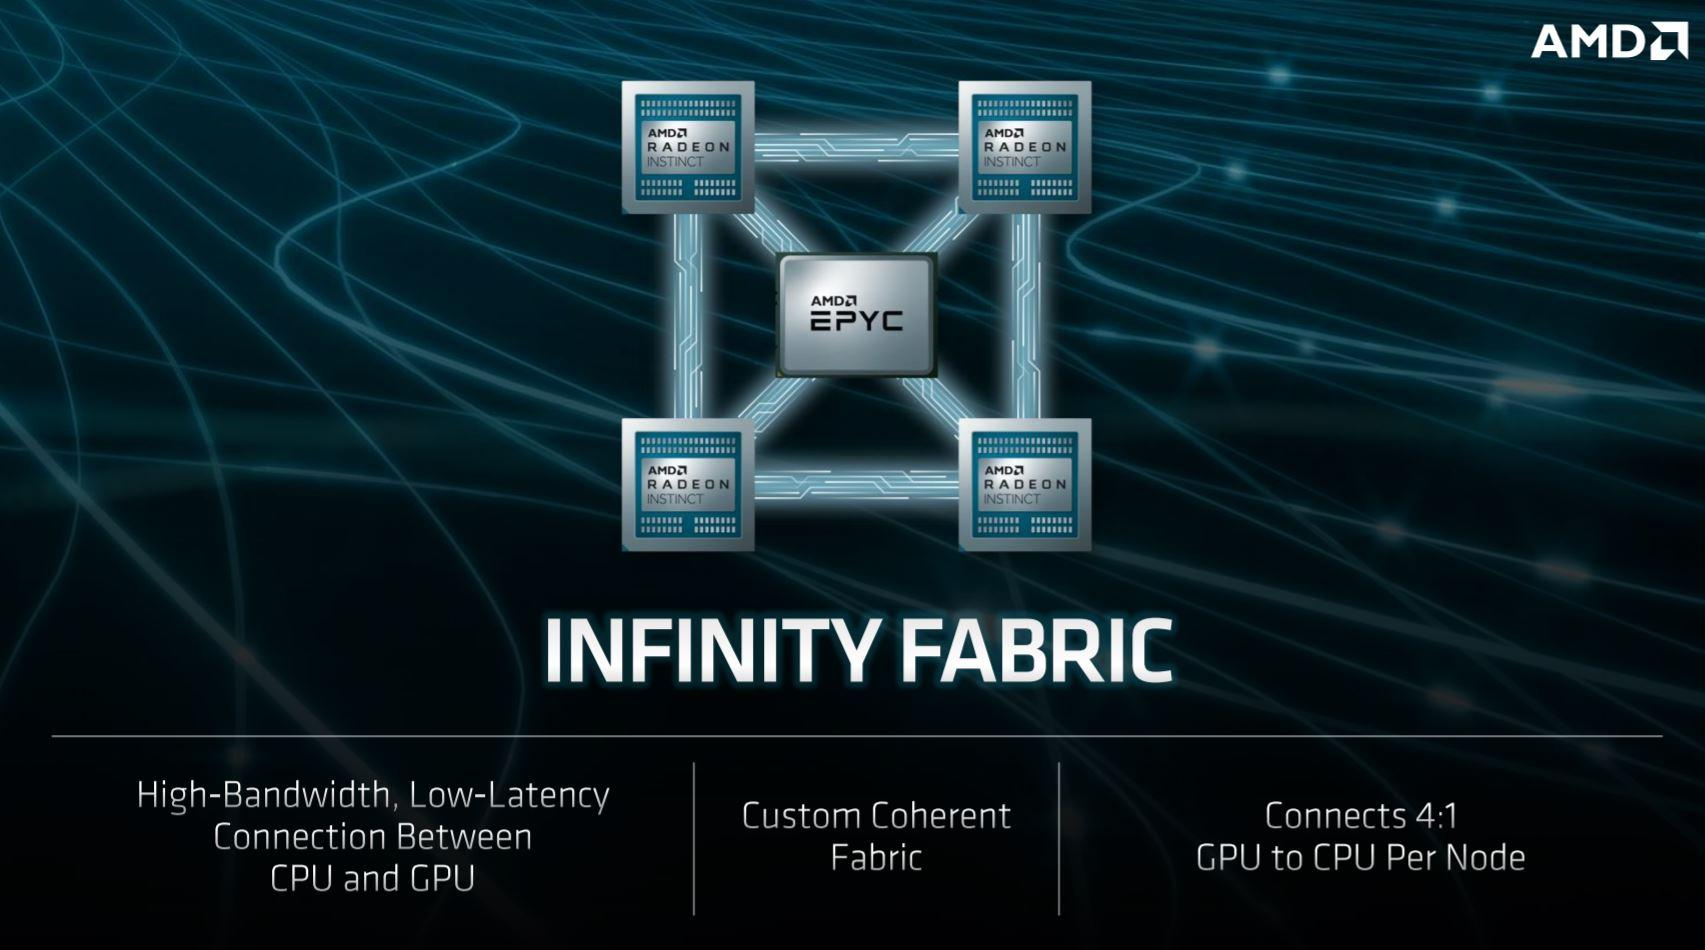 AMD Just Landed a Deal to Power the World's Fastest